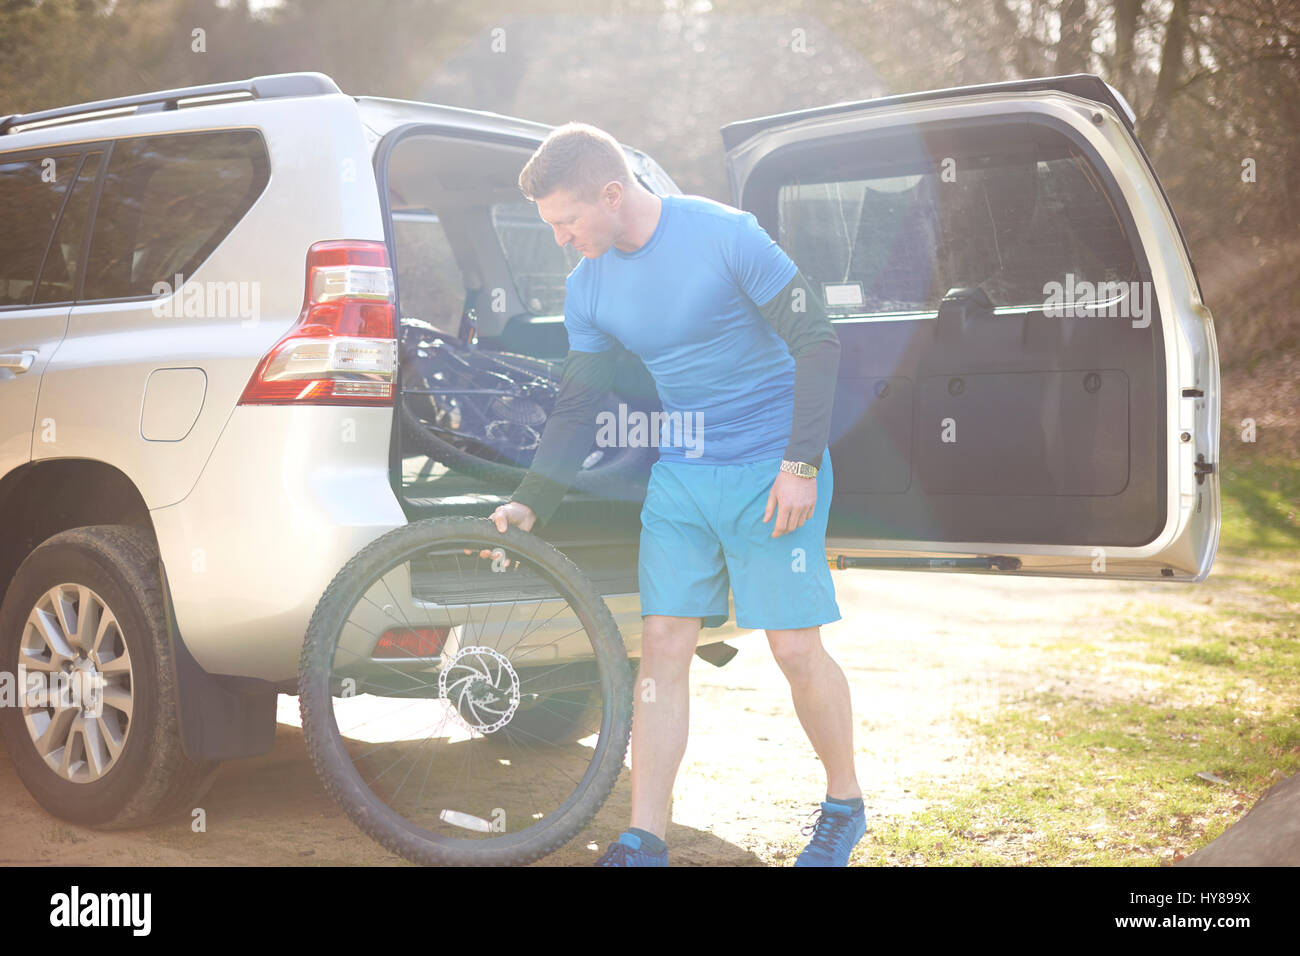 A man prepares to go mountain biking - Stock Image